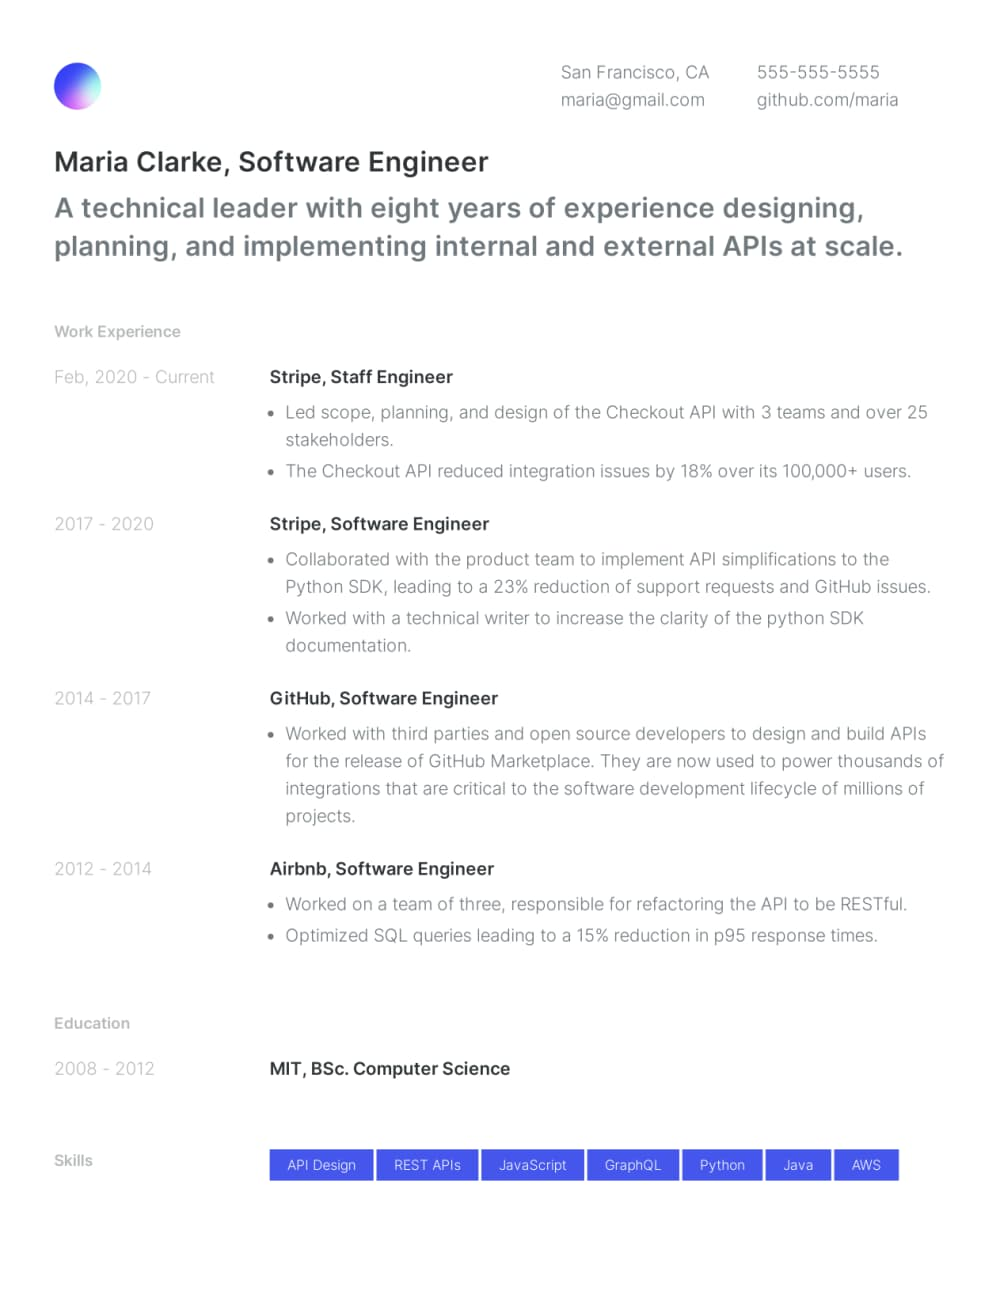 Example resume built with Standard Resume